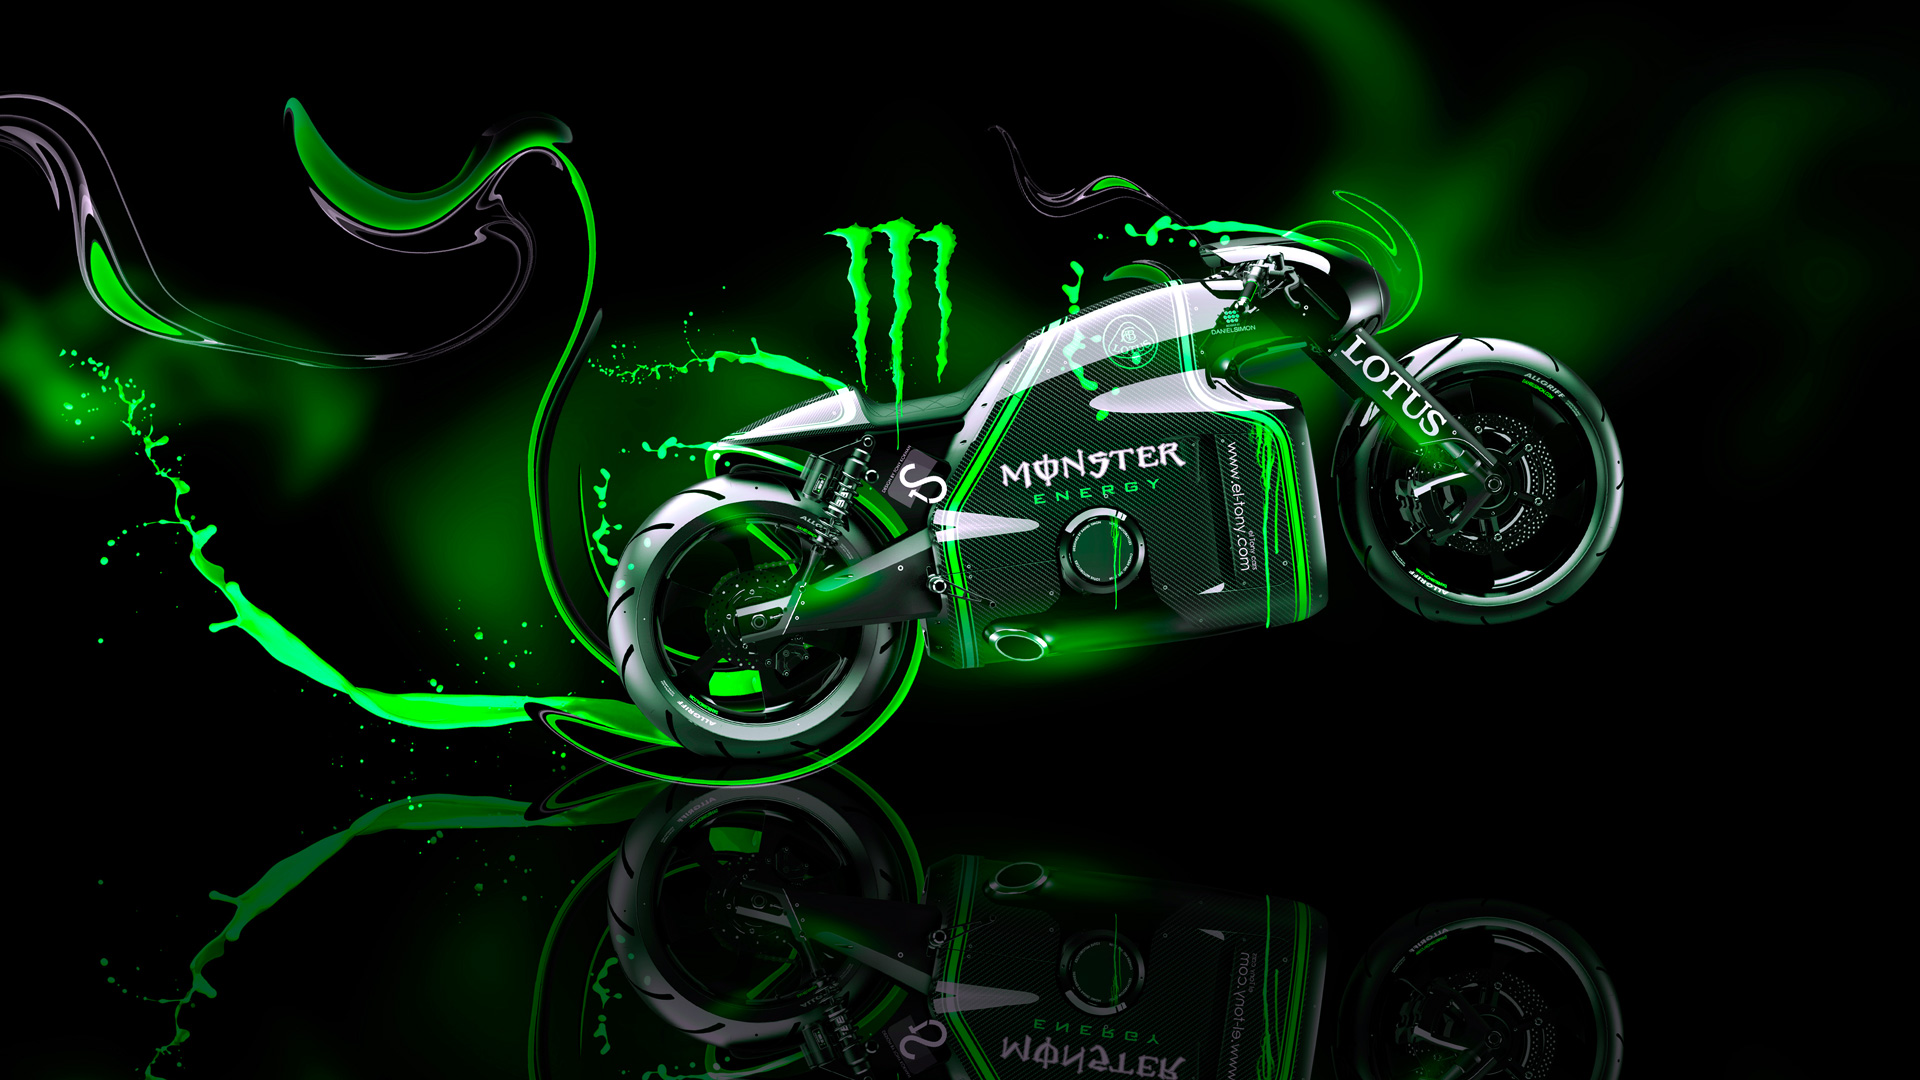 Monster Energy Lotus C 01 Fantasy Plastic Bike